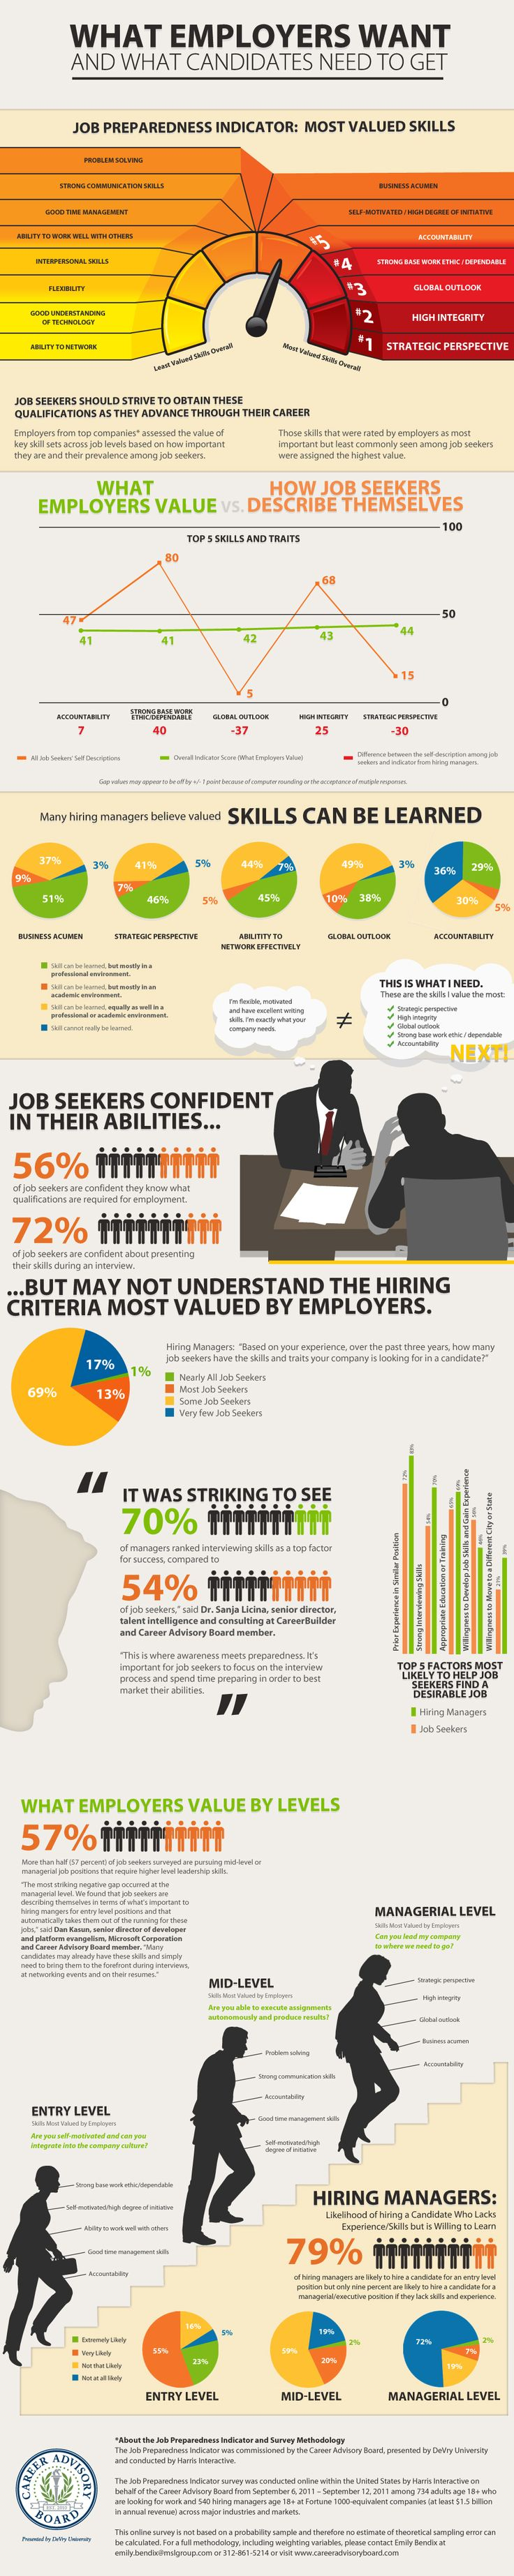 What do employers really want? Top 5 include Integrity, Work Ethic and Accountability.